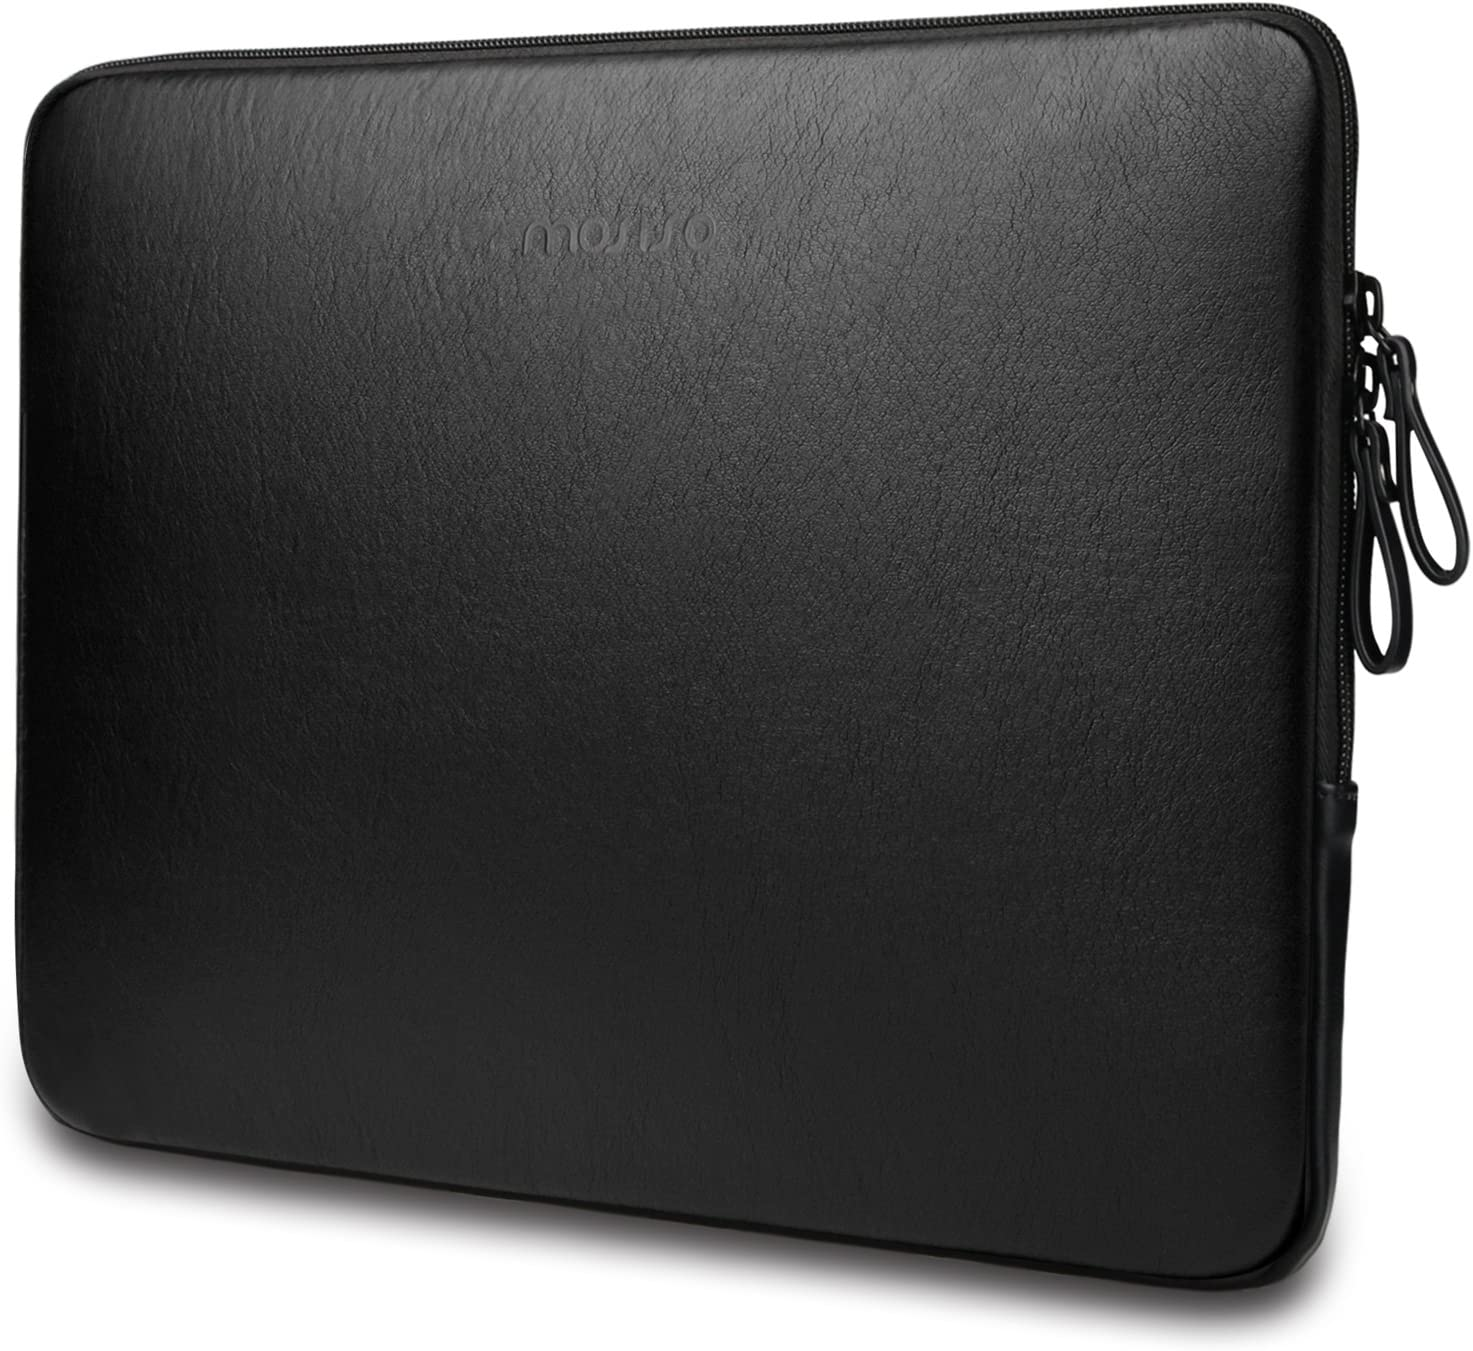 Space Gray PU Leather Super Padded Waterproof Protective Cover Case MOSISO Laptop Sleeve Bag Compatible with 13-13.3 Inch MacBook Pro Retina//MacBook Air//Surface Laptop 2 2018 2017//Surface Book